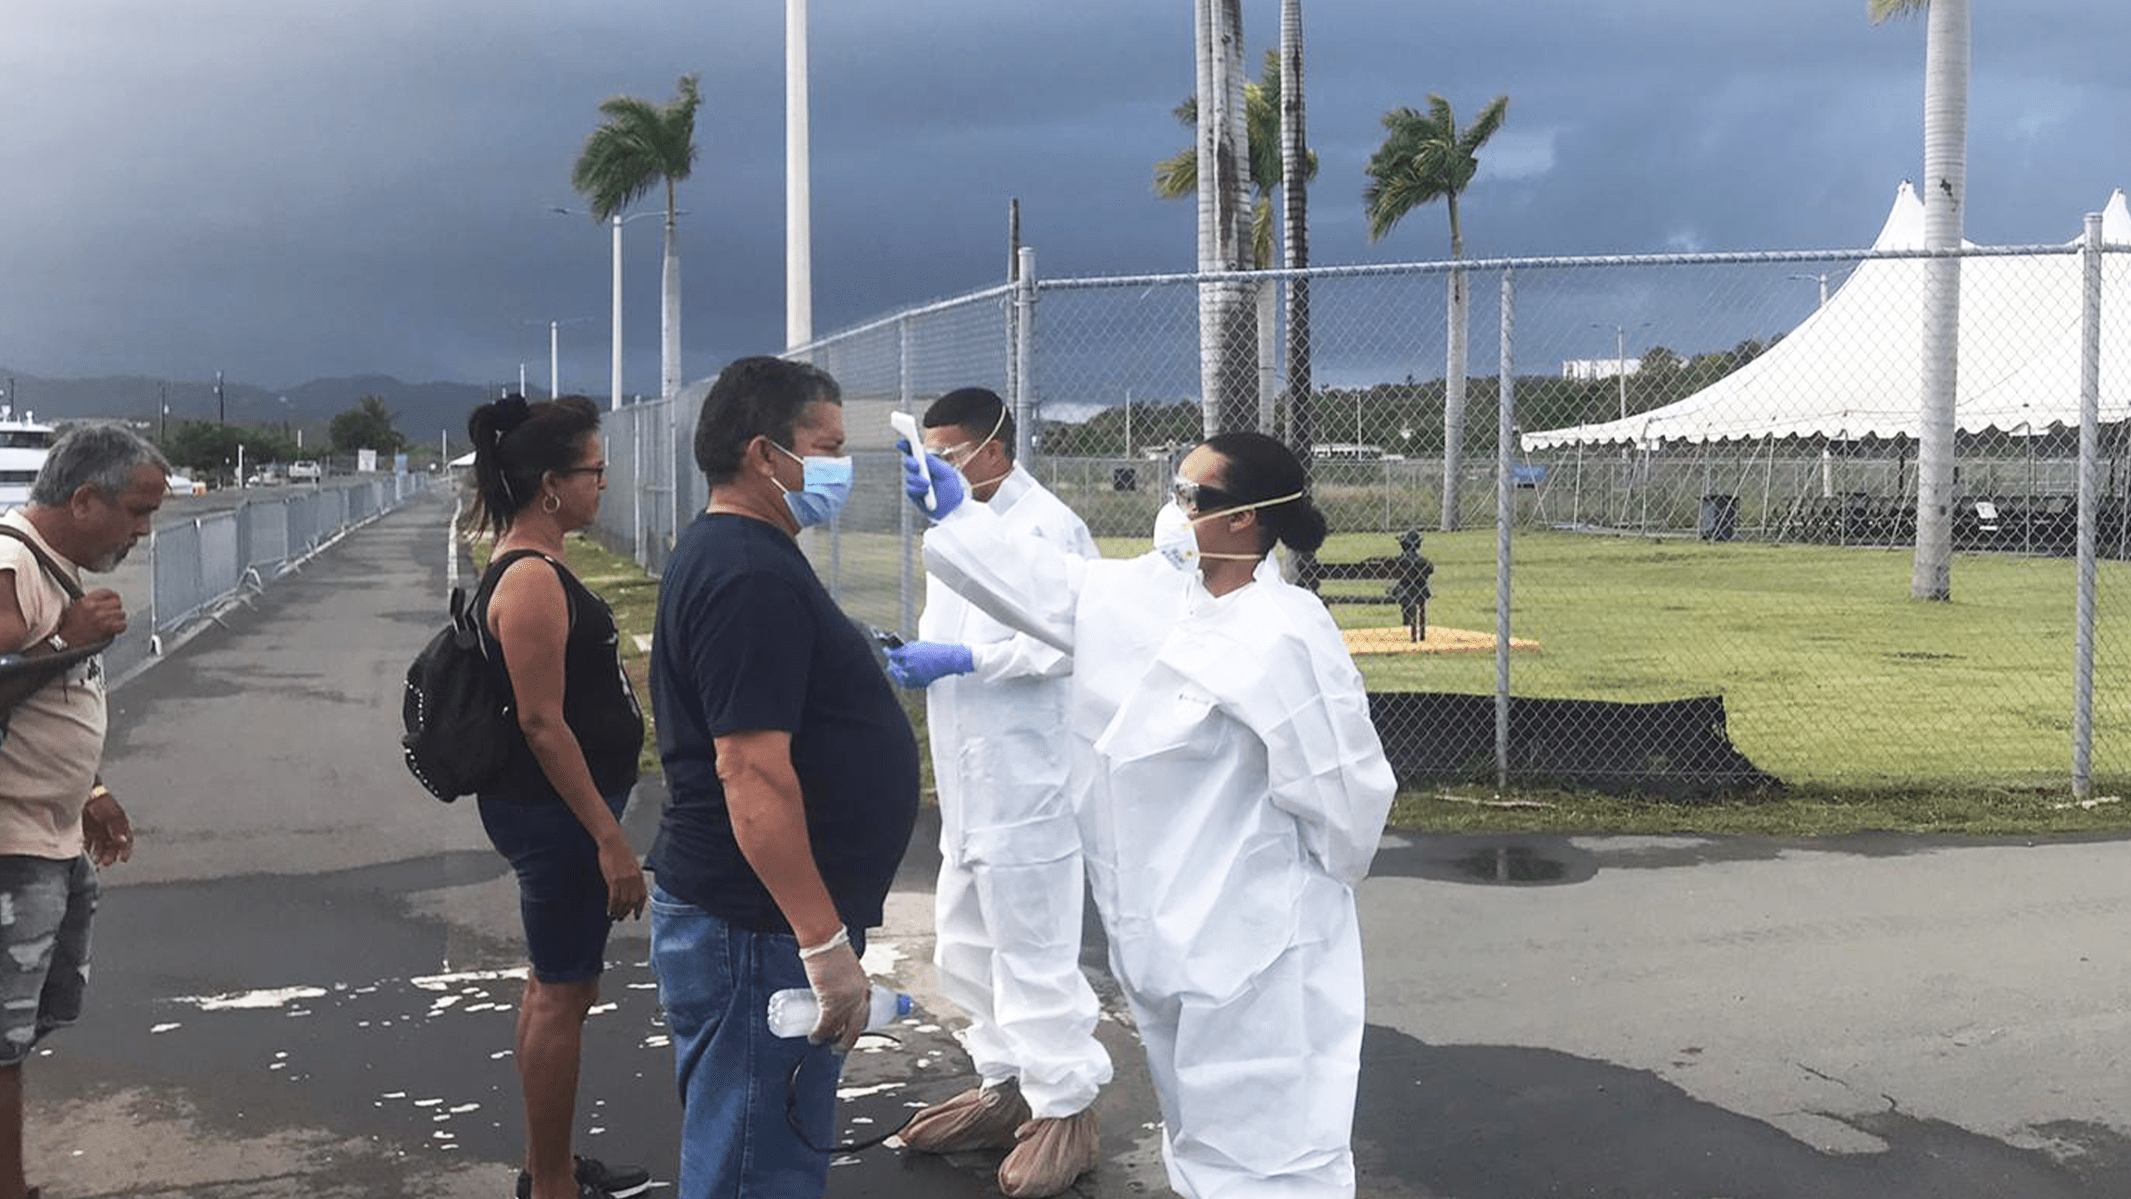 Image: members of the Puerto Rican National Guard wearing masks, eye protection, and white dust suits screen recently-deboarded passengers from an airplane before permitting them to enter Puerto Rico.